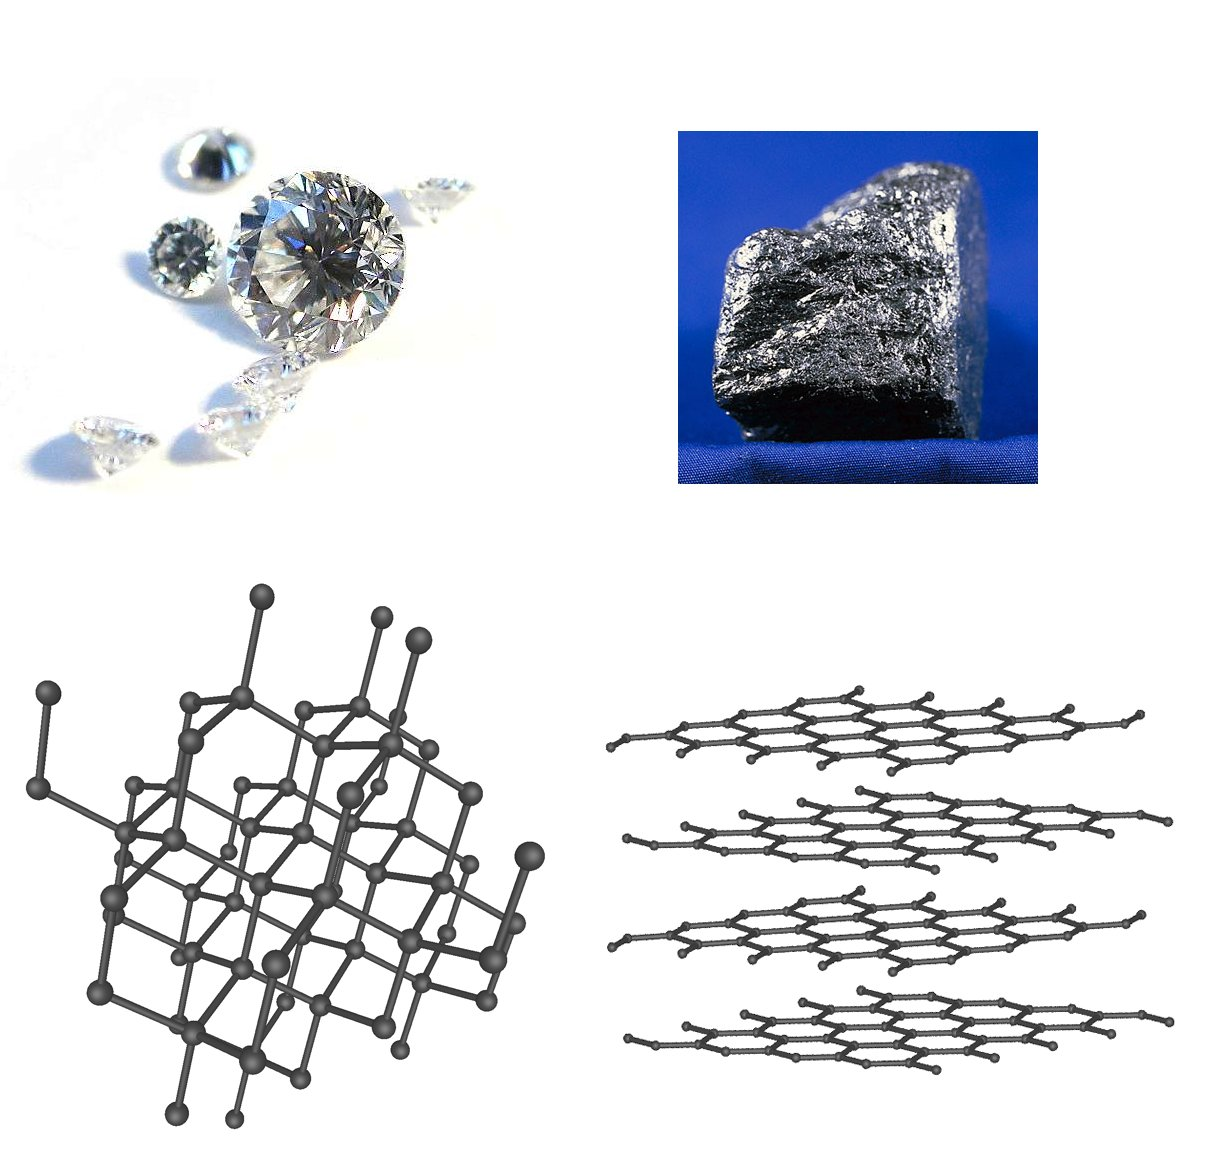 Chemical structures and photographs of diamond and graphite